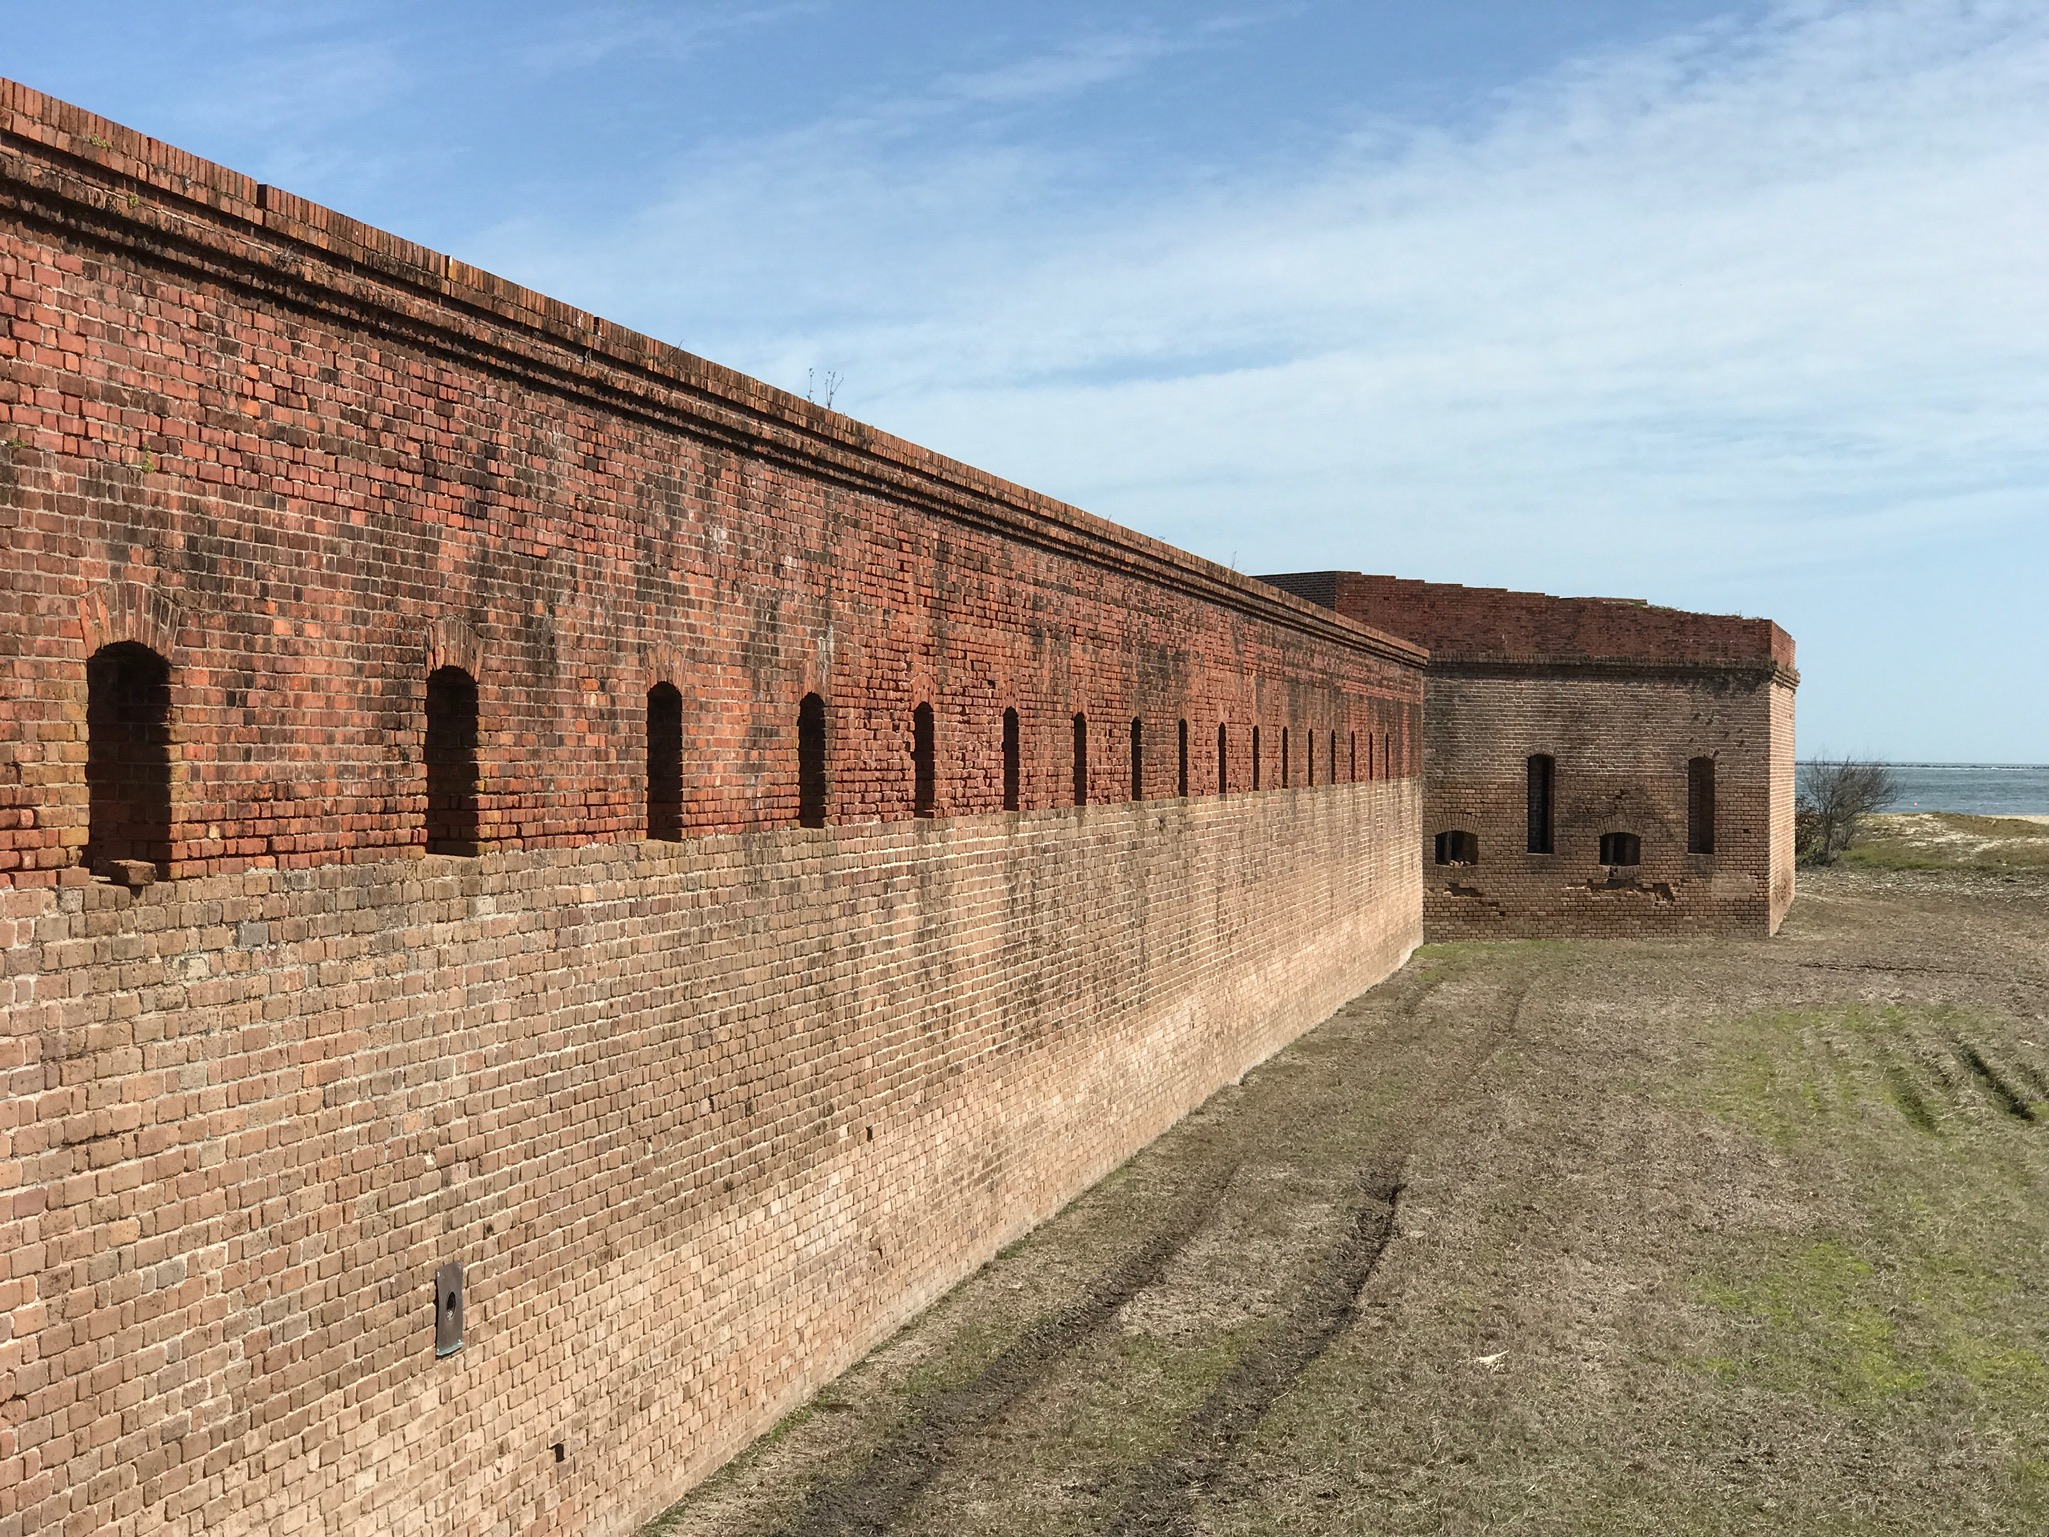 This is Fort Clinch State Park in Jacksonville, FL. Part of one of our Spring Break trips.